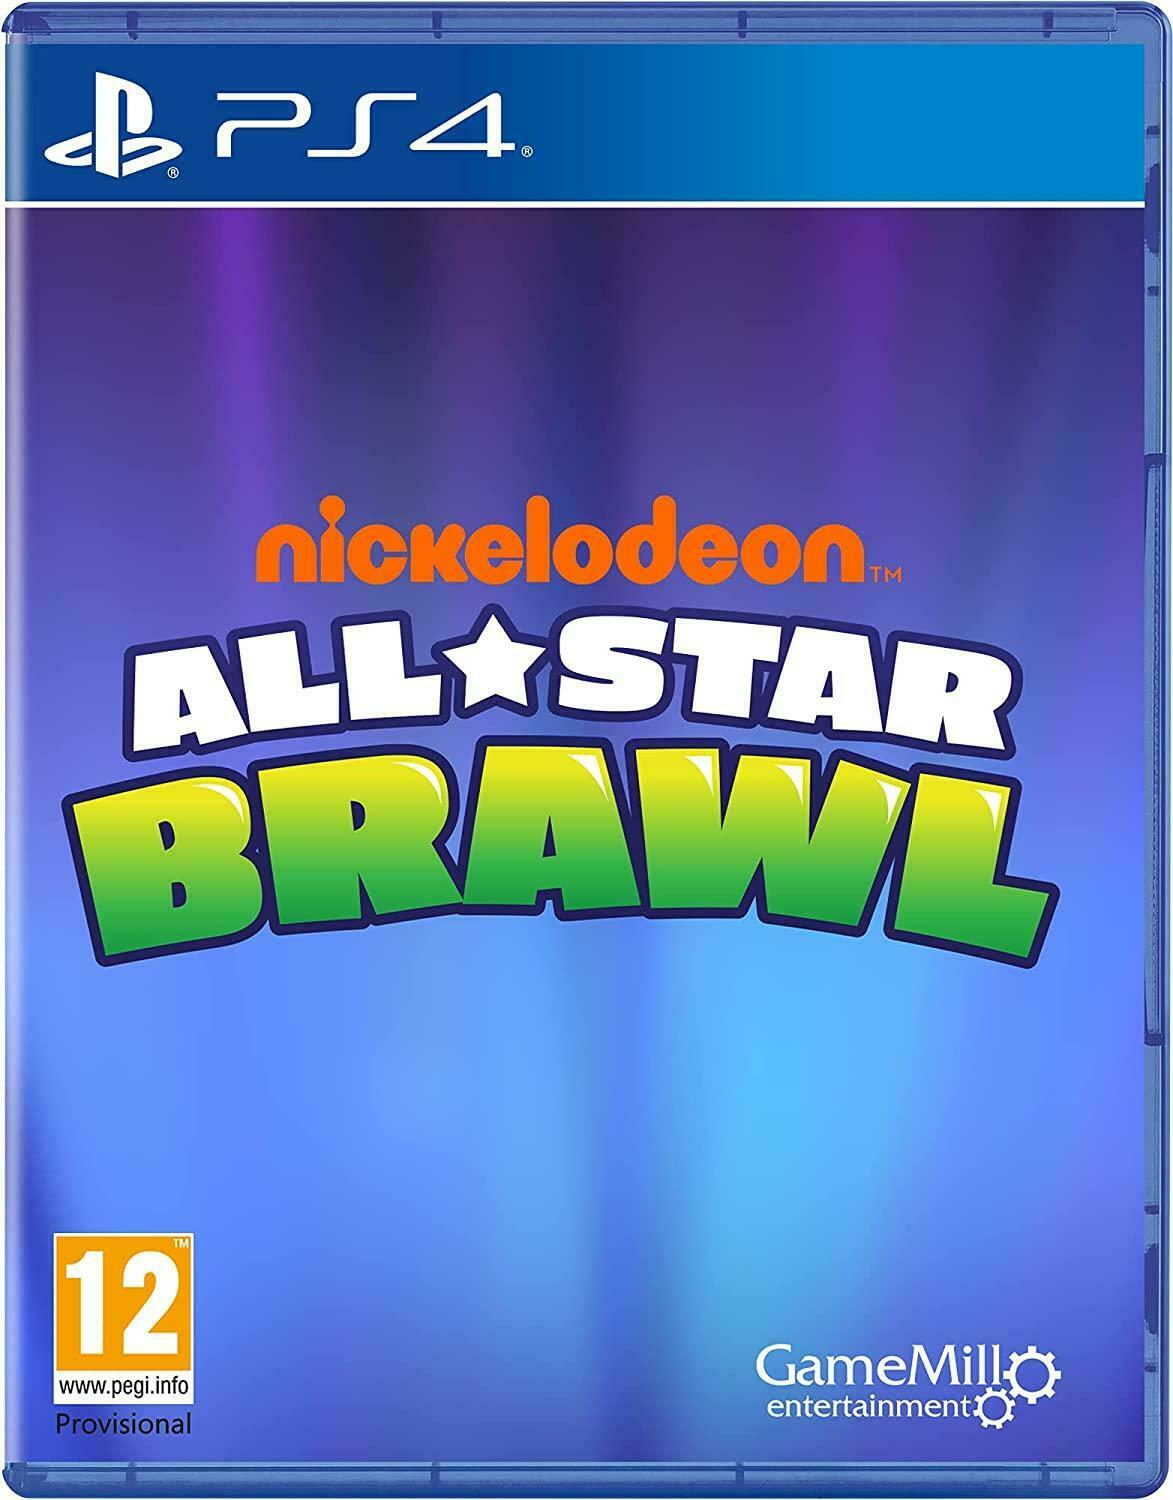 Nickelodeon All-Star Brawl (PS4) Pre-Order Released 9/11/2021